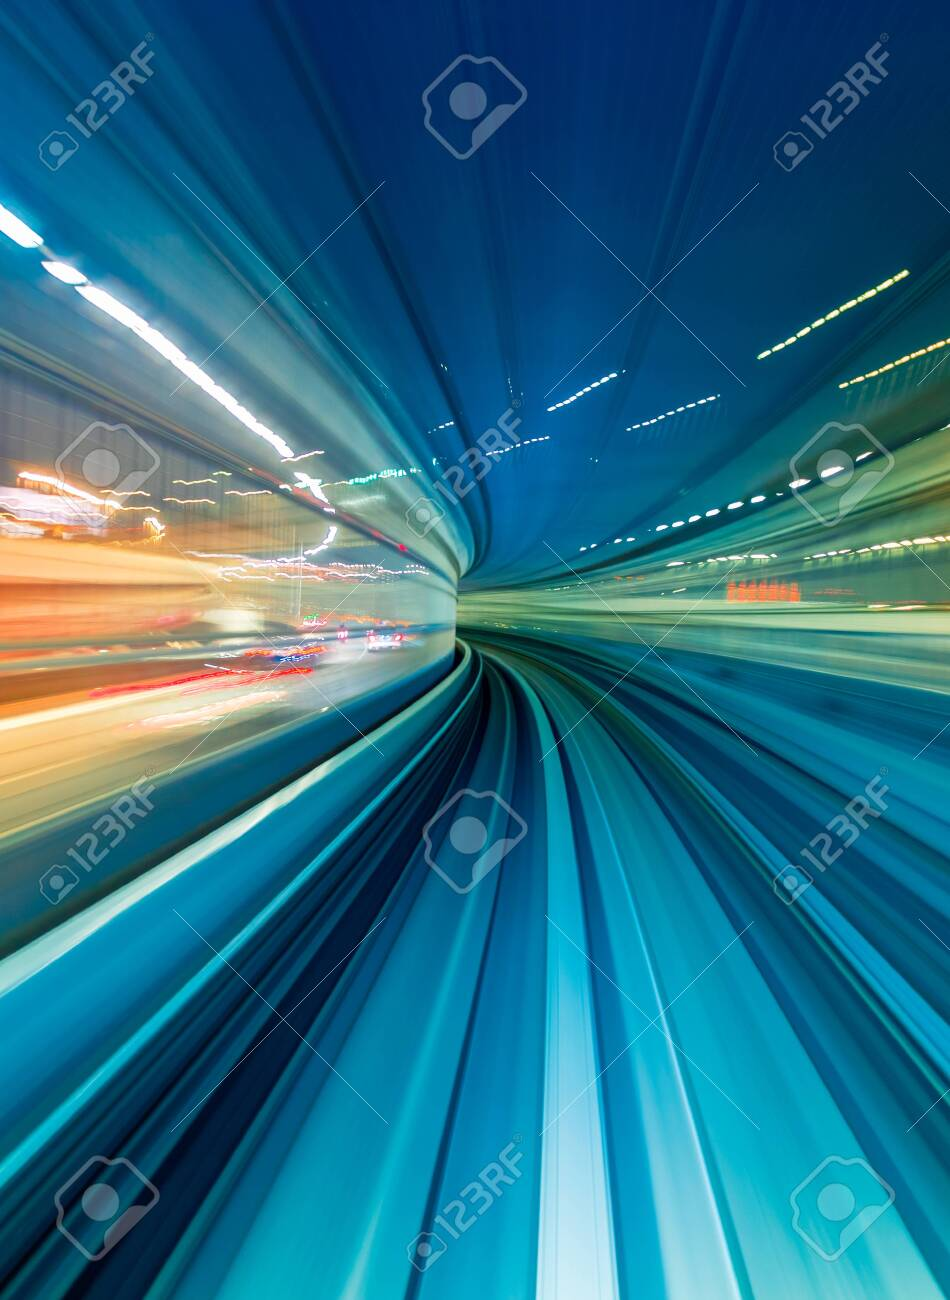 Abstract high speed technology POV train motion blurred concept from the Yuikamome monorail in Tokyo, Japan - 152850631